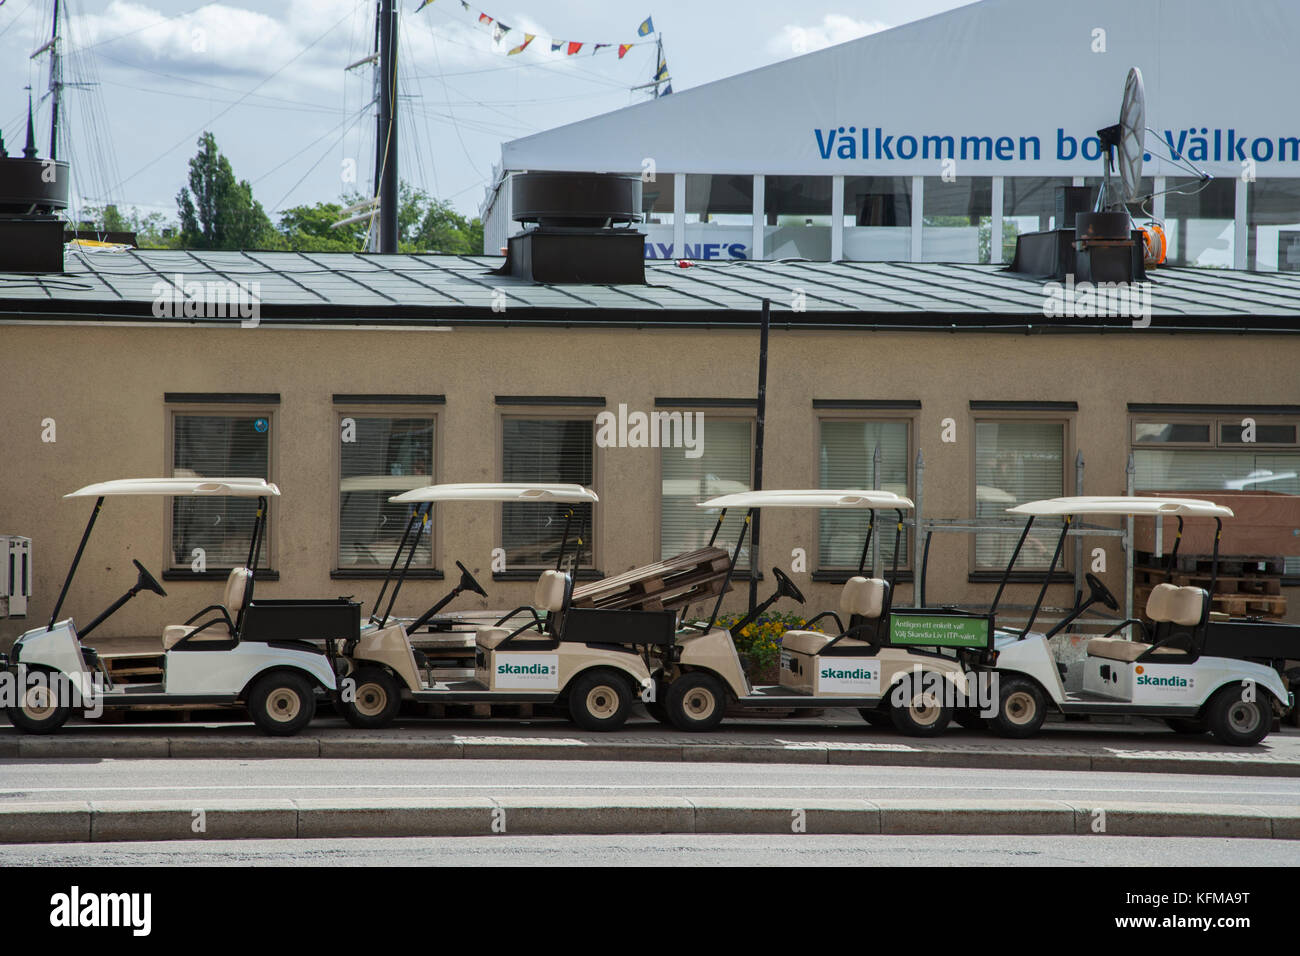 Golfbilar / Golf carts - Stock Image